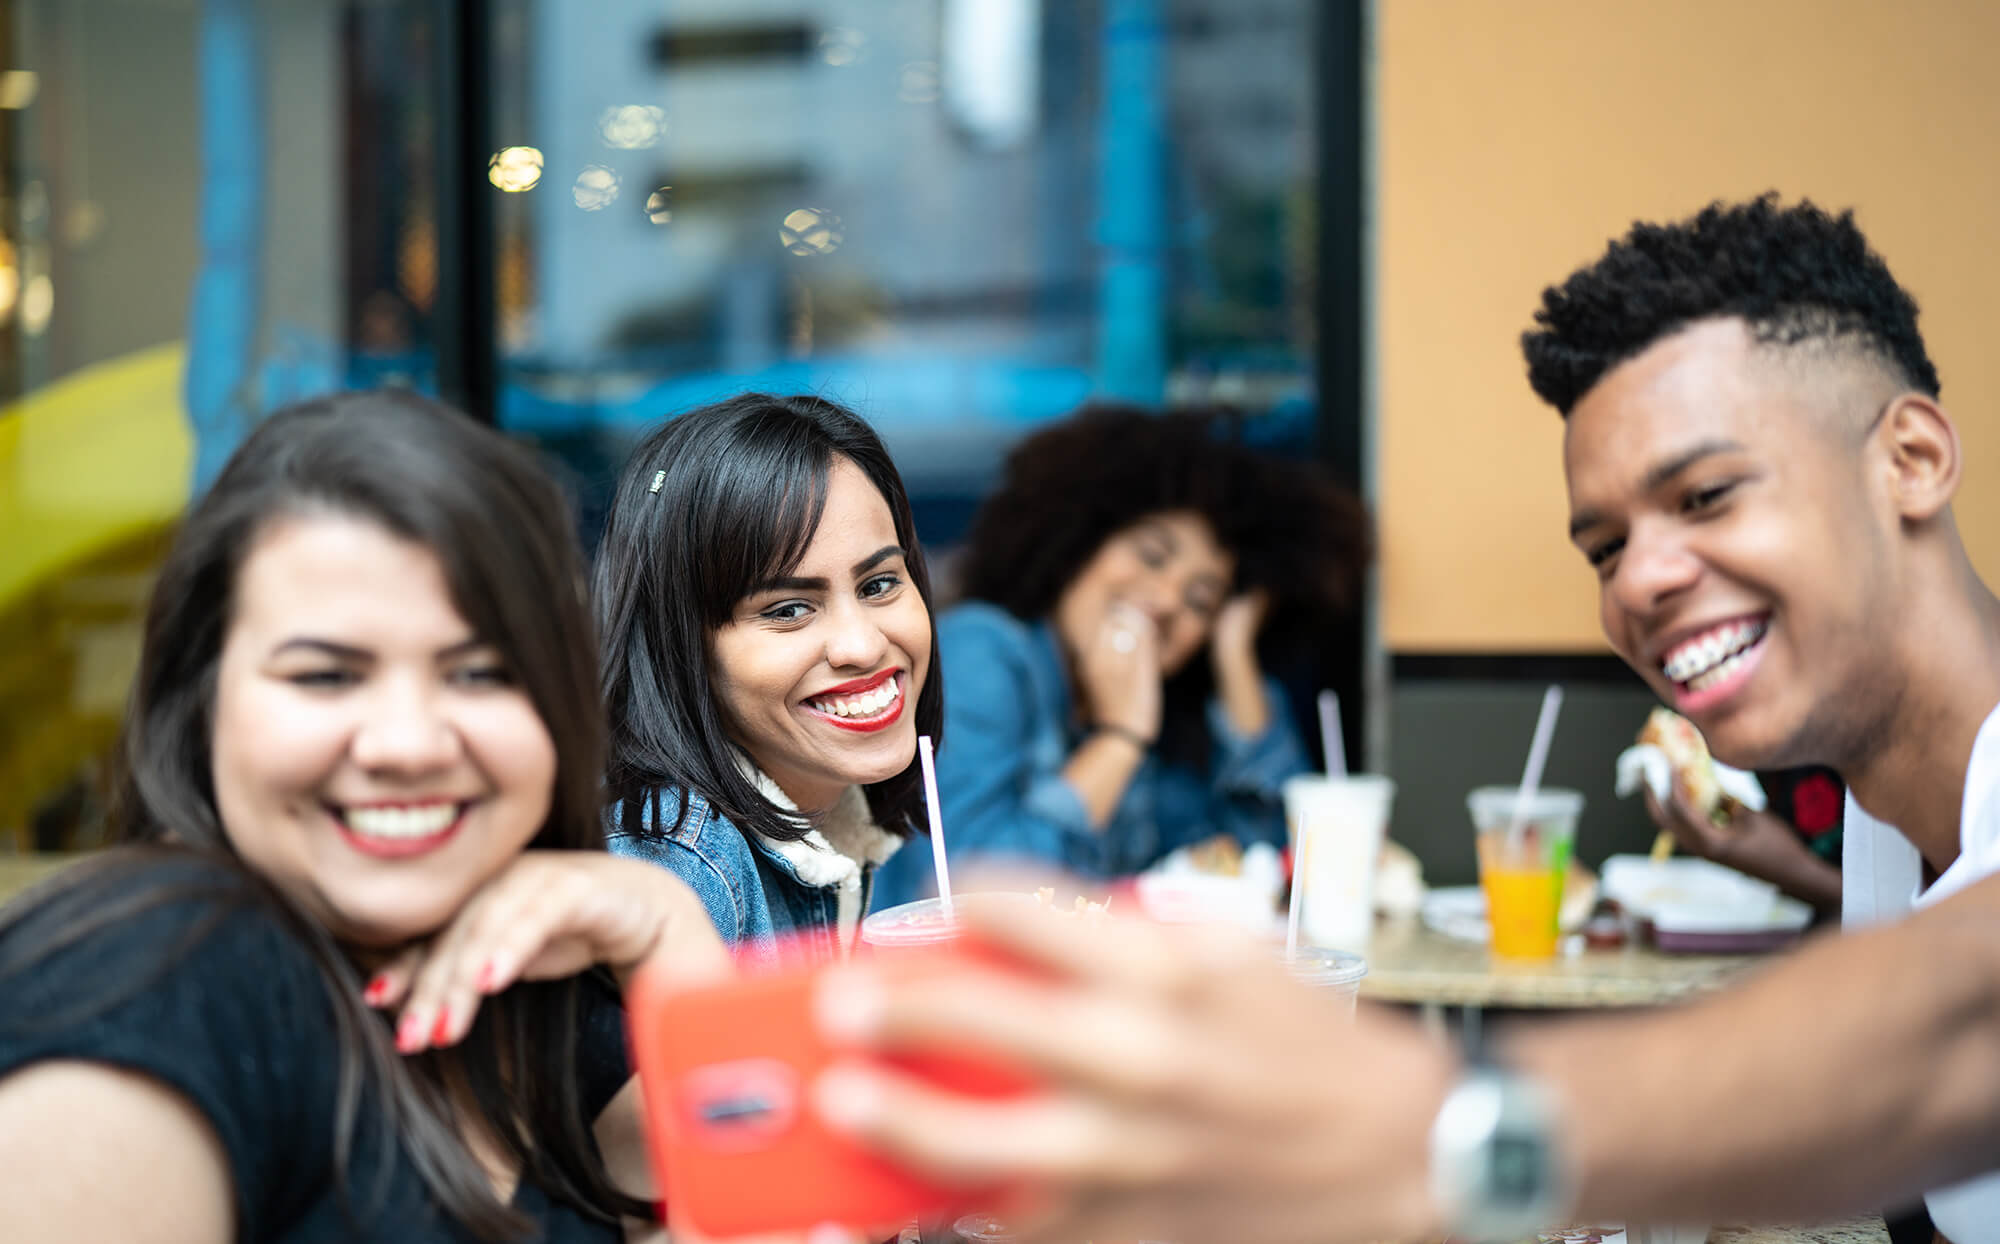 3 teens in the foreground, and one blurred out in the background, are sitting at a table in a restaurant. One teen who has braces on his teeth, is holding a phone out to take a selfie of himself and the other teens. They are all smiling and look very happy.